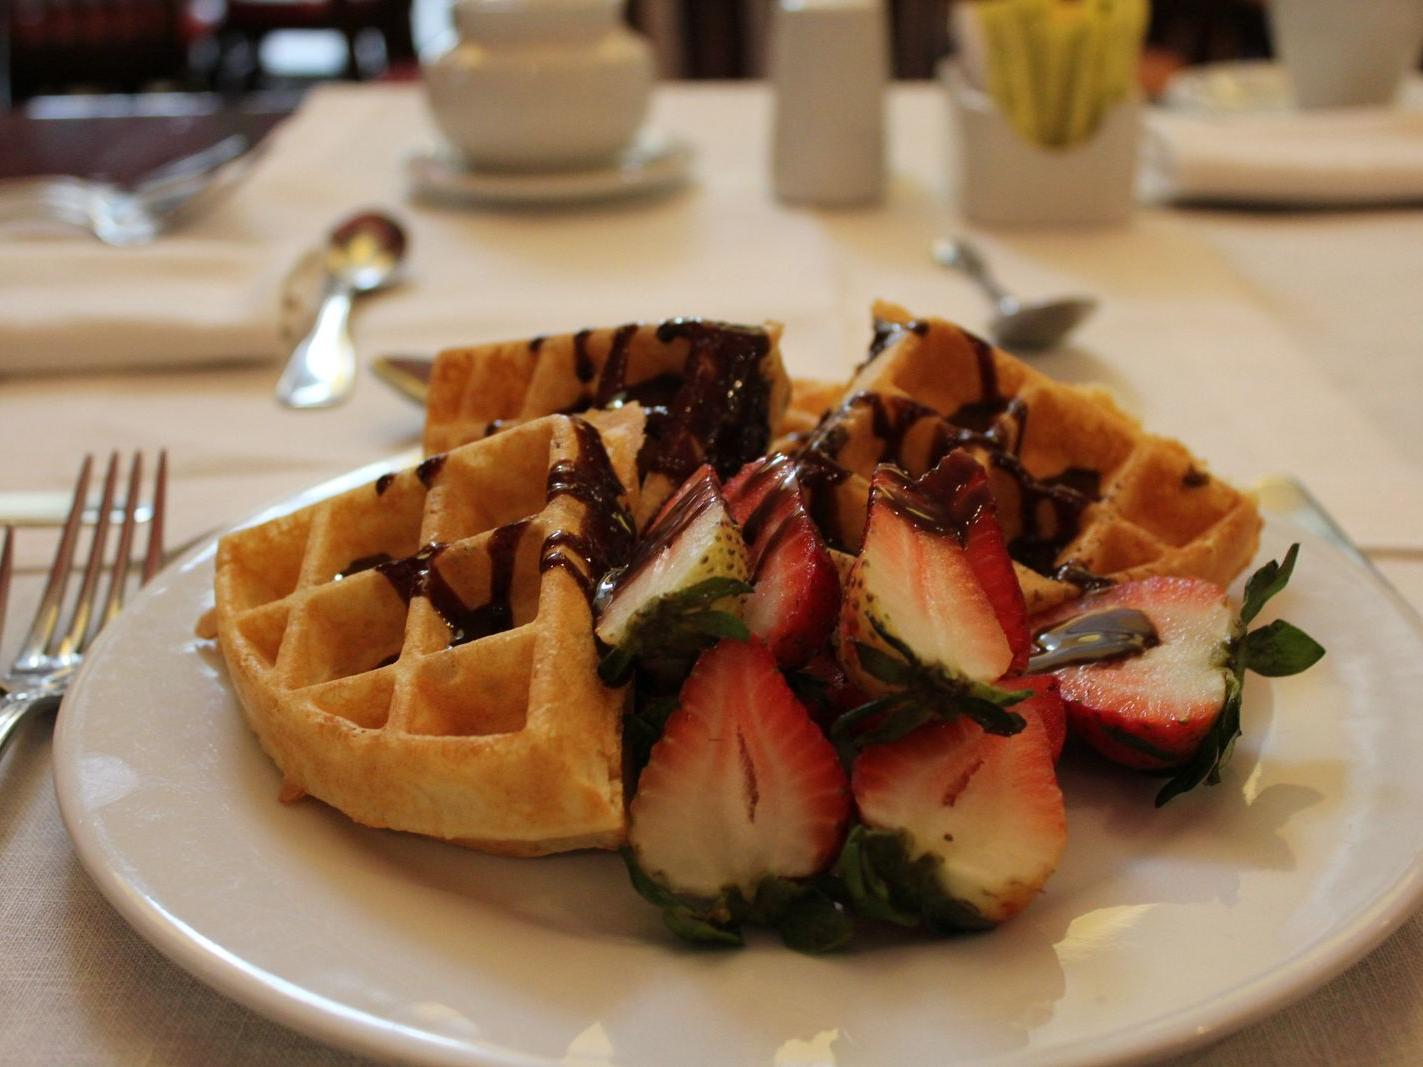 waffles and strawberries drizzled with chocolate